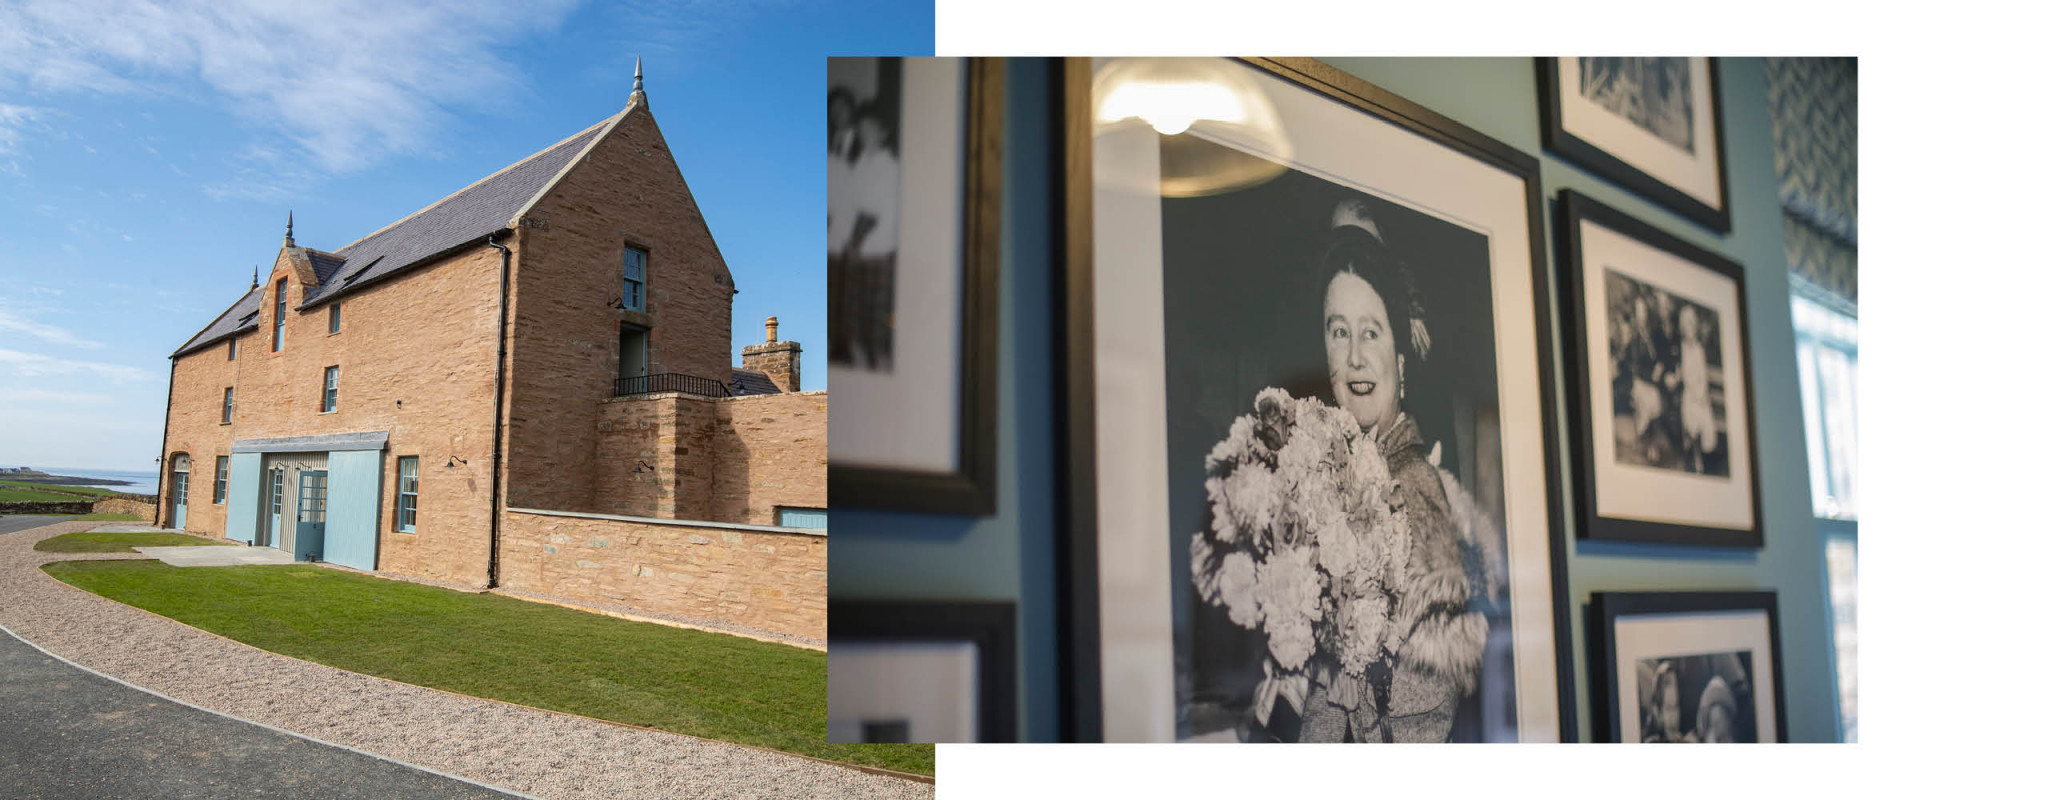 Two images, one of The Granary Exterior and one of Photographs of The Queen Mother